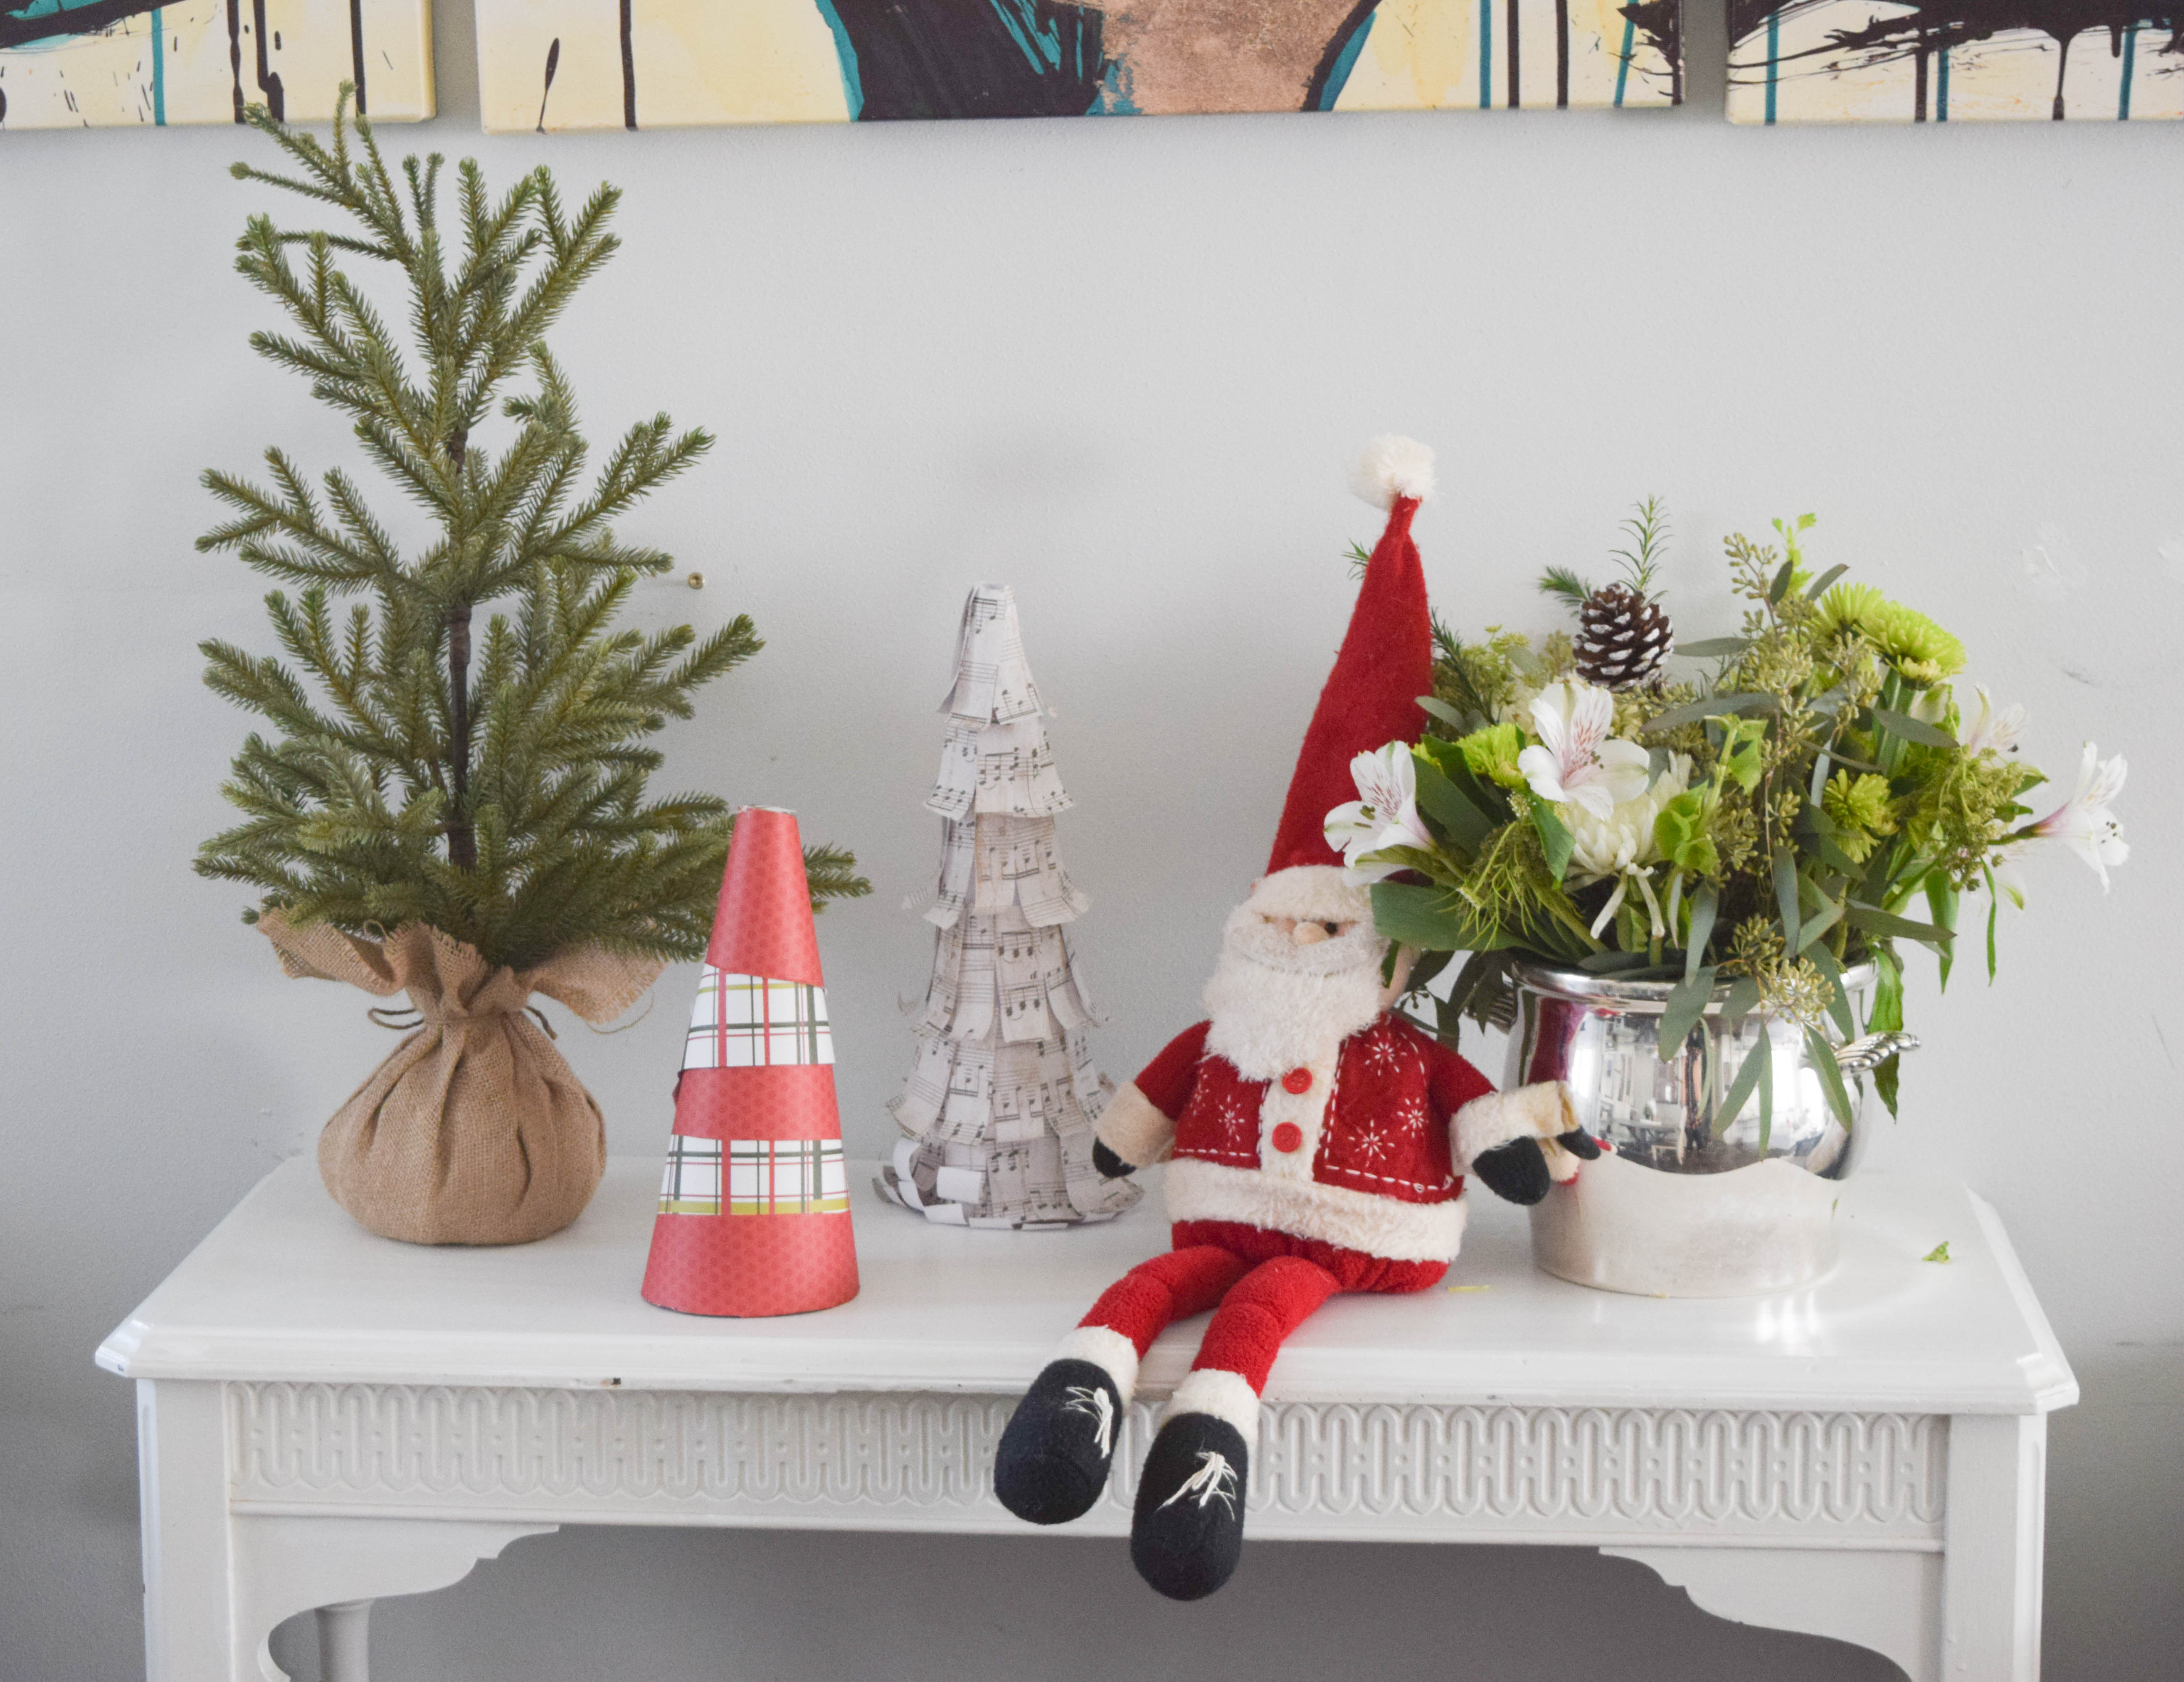 Christmas decorations for a dining room our house now a home for Simple christmas decorations